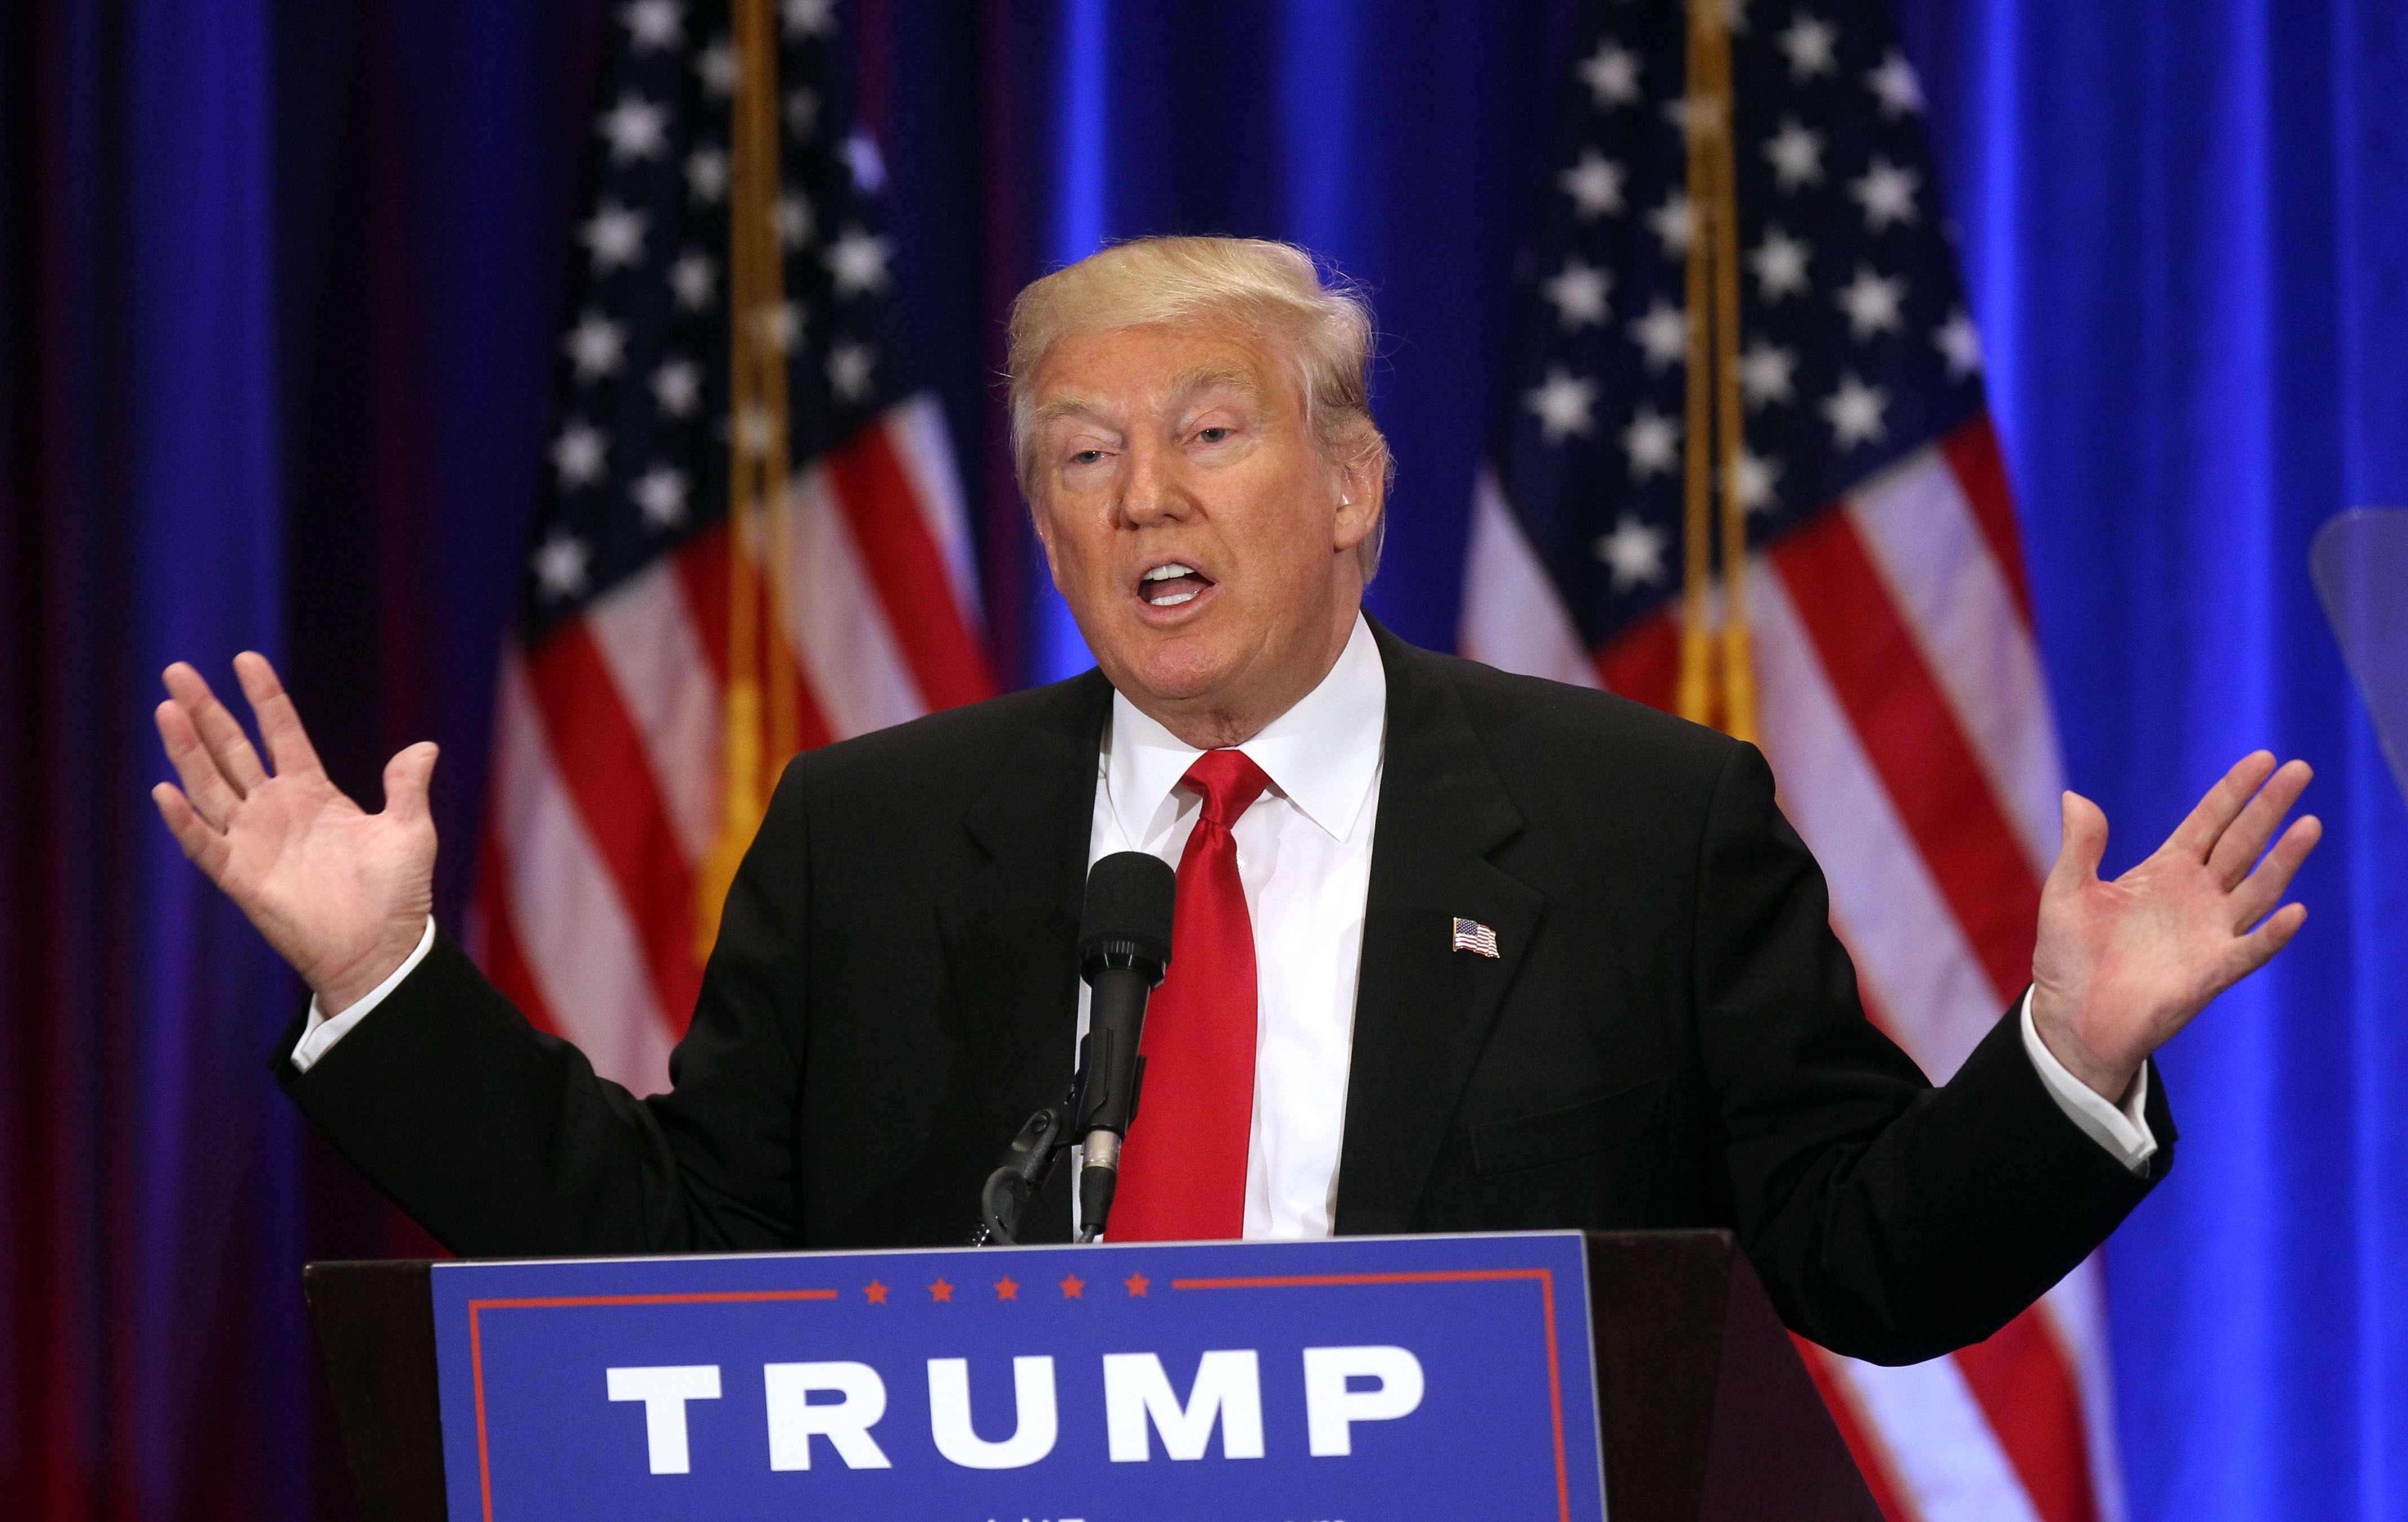 Donald J Trump gives campaign speech at Trump SoHo in New York City on June 22, 2016.